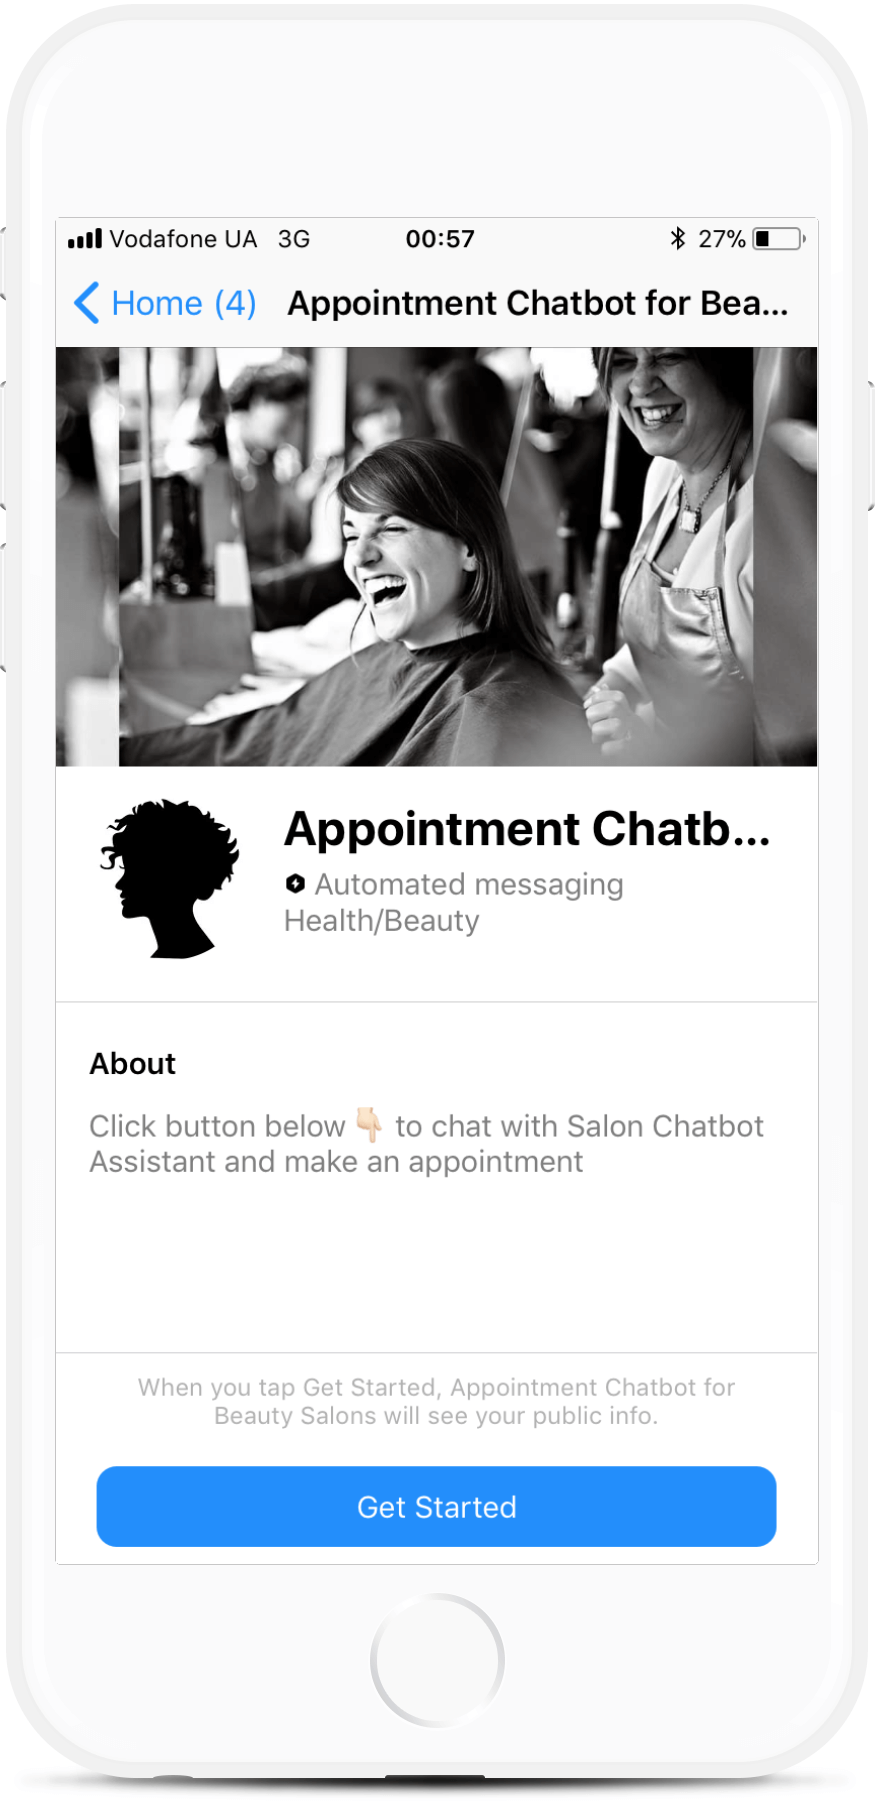 Appointment Chatbot for Hair Salon bot screenshot